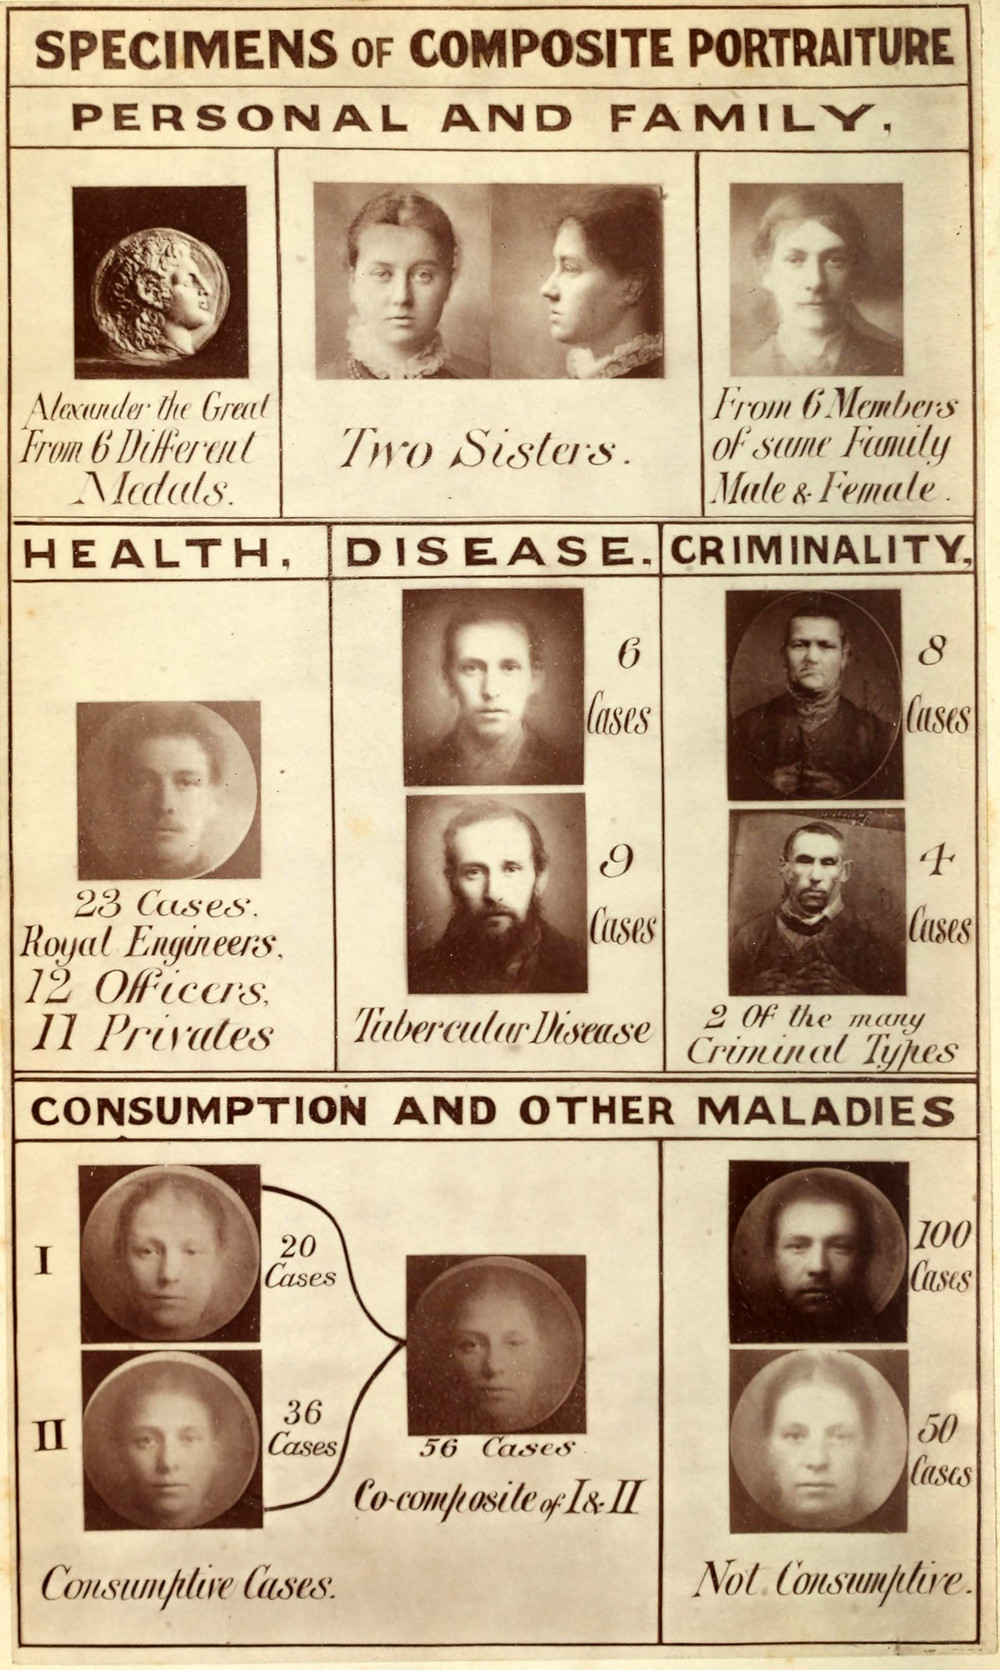 """A page shows a number of different faces. They are """"composite photographs,"""" averages of a number of different individuals photos, that purport to show the average faces for """"healthy,"""" """"diseased"""" and """"criminal"""" types among others."""